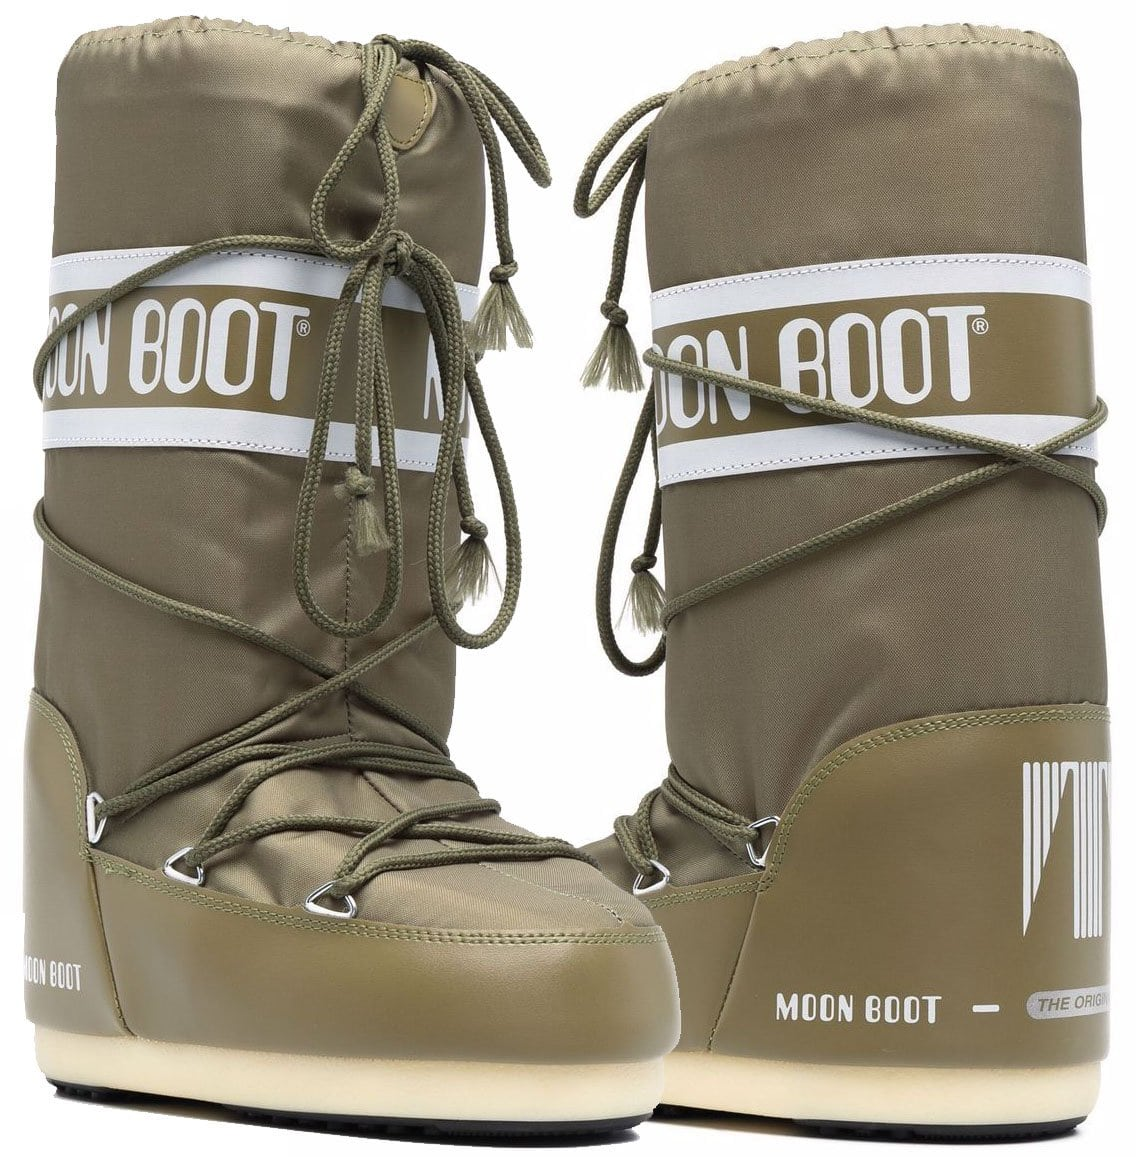 Perfect for any winter activities, the Moon Boots Snow boots have a green paneled design with logo tape detailing and front lace-up fastening